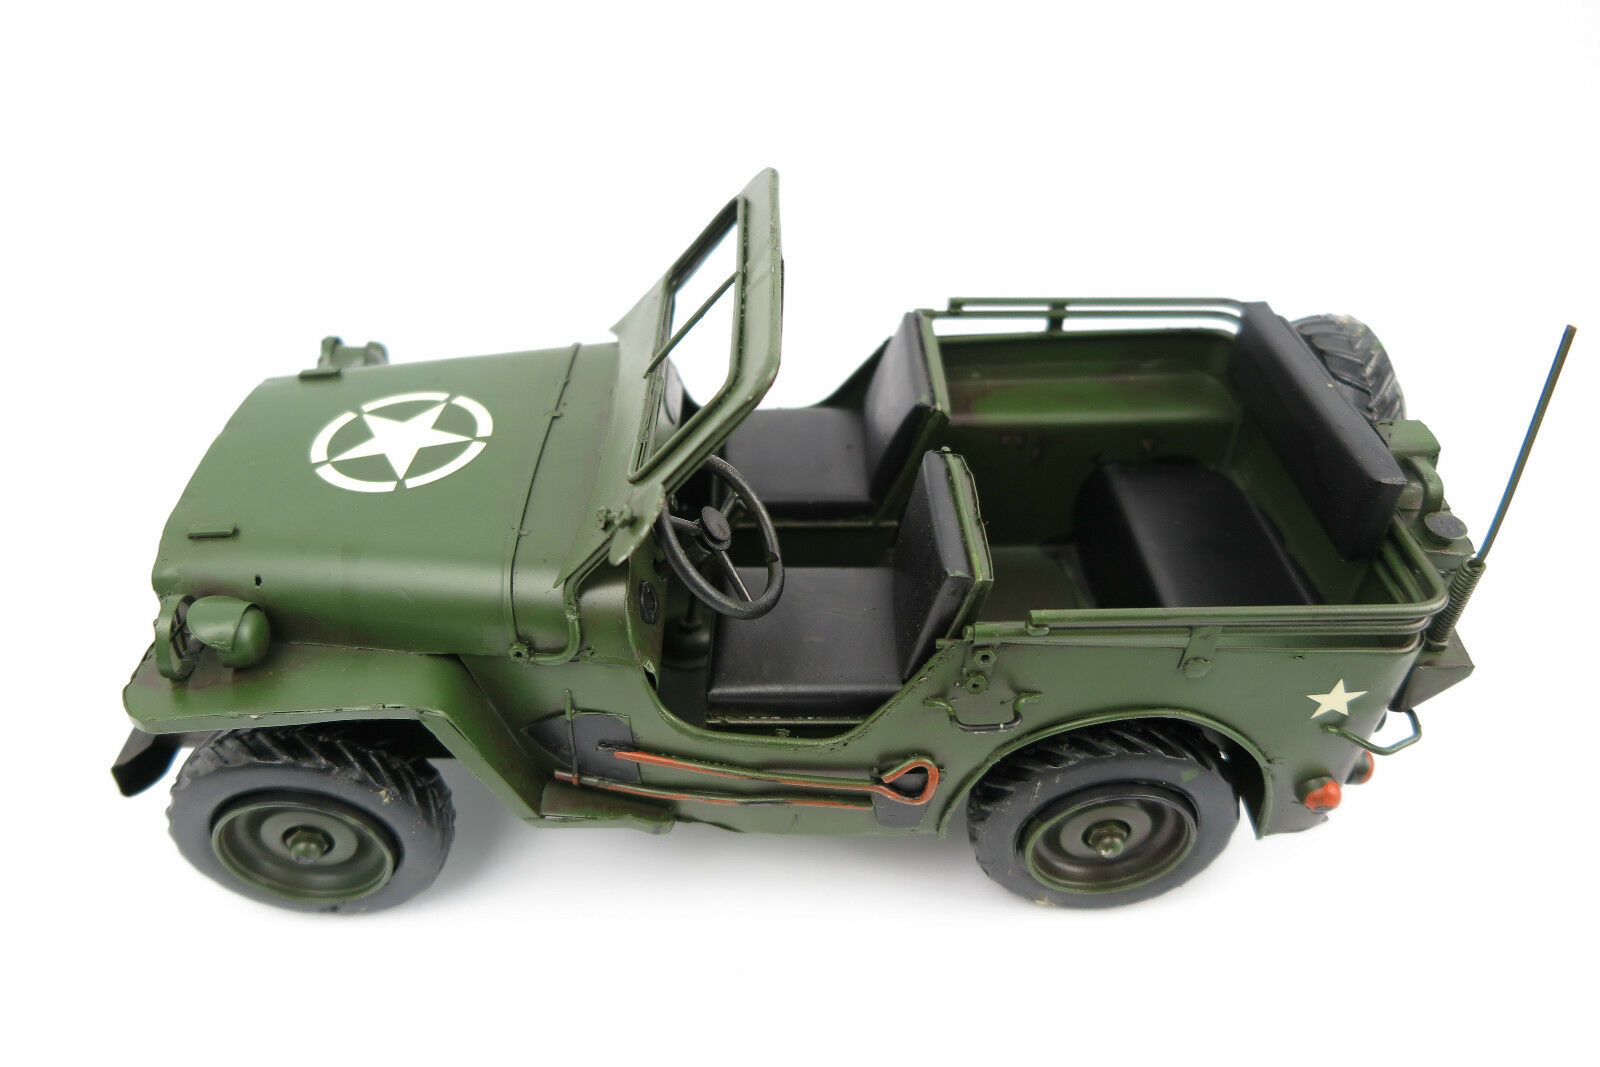 Tôle ami jeep us army 2.wk voiture miniature